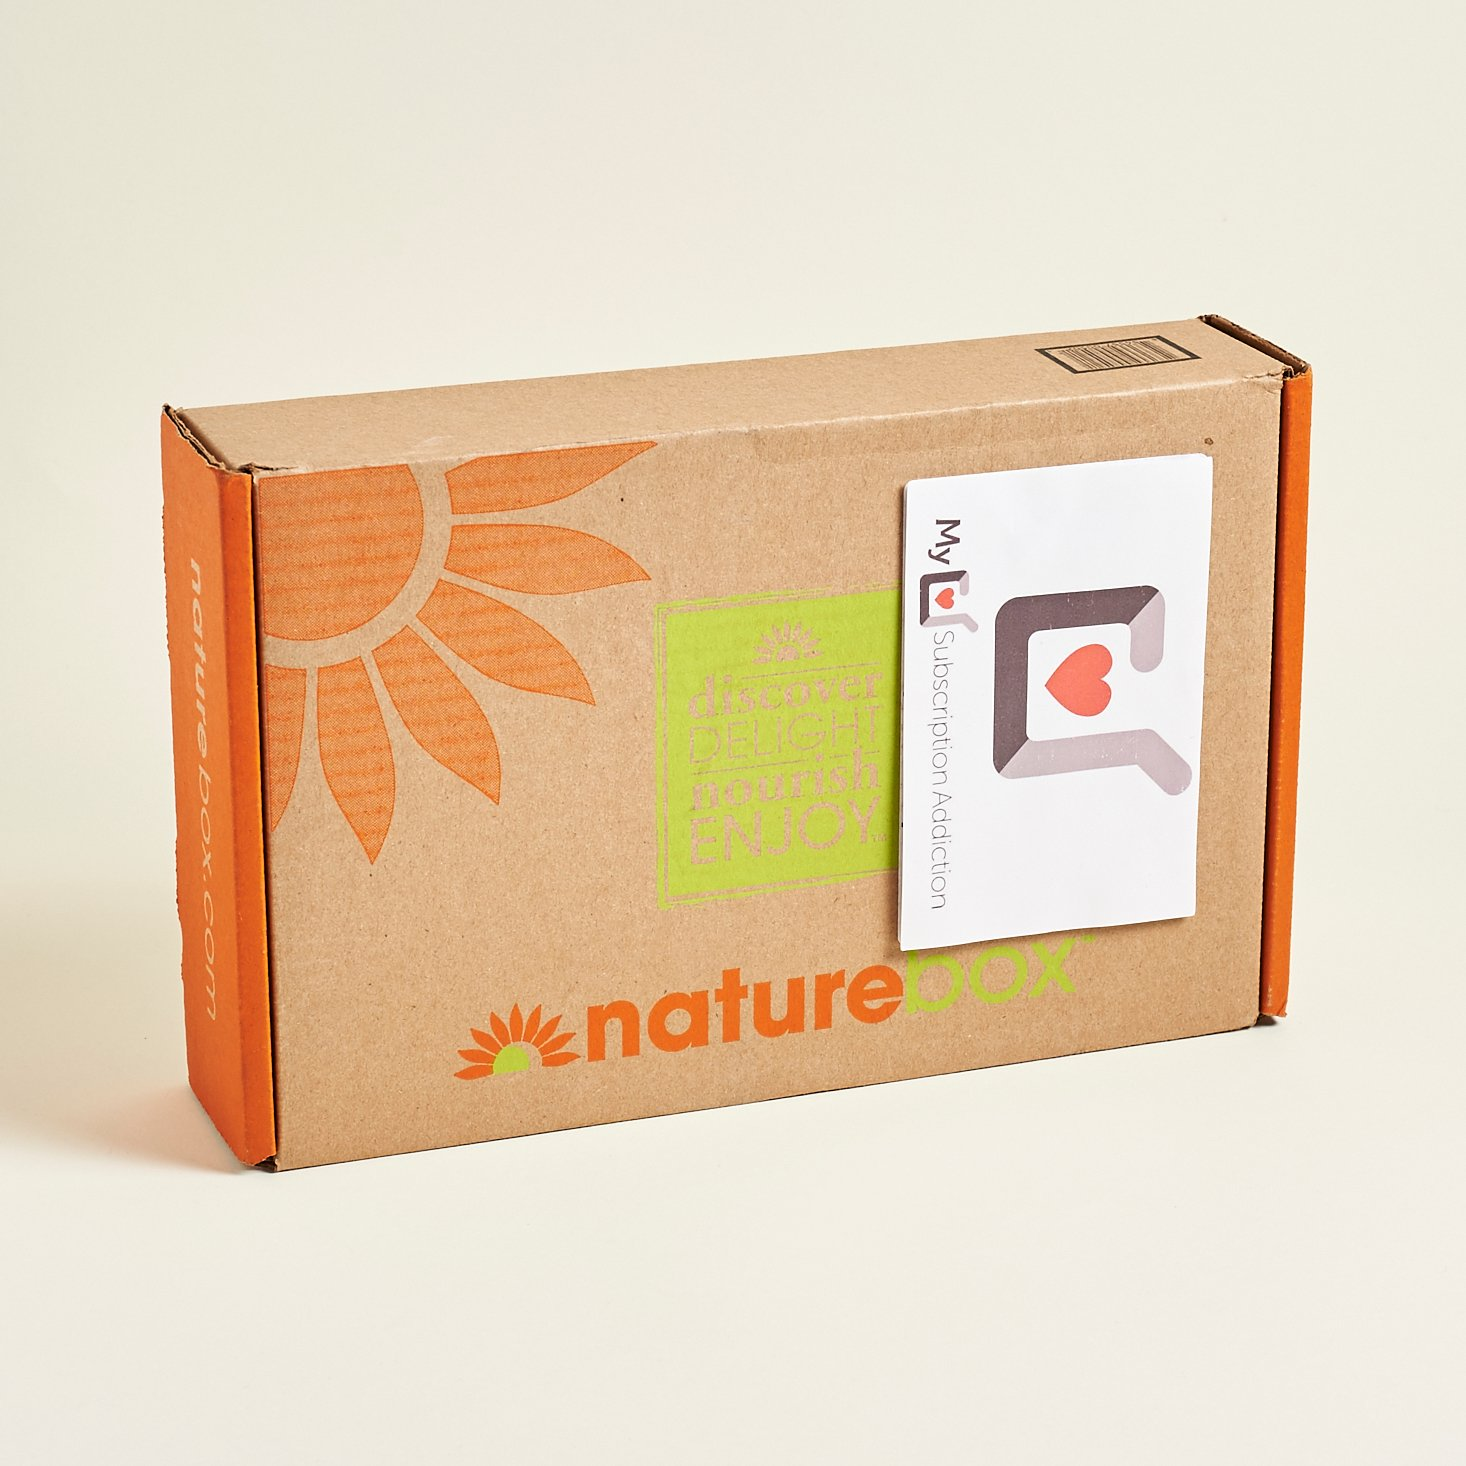 naturebox subscription box review 50 off coupon december 2016 my subscription addiction. Black Bedroom Furniture Sets. Home Design Ideas